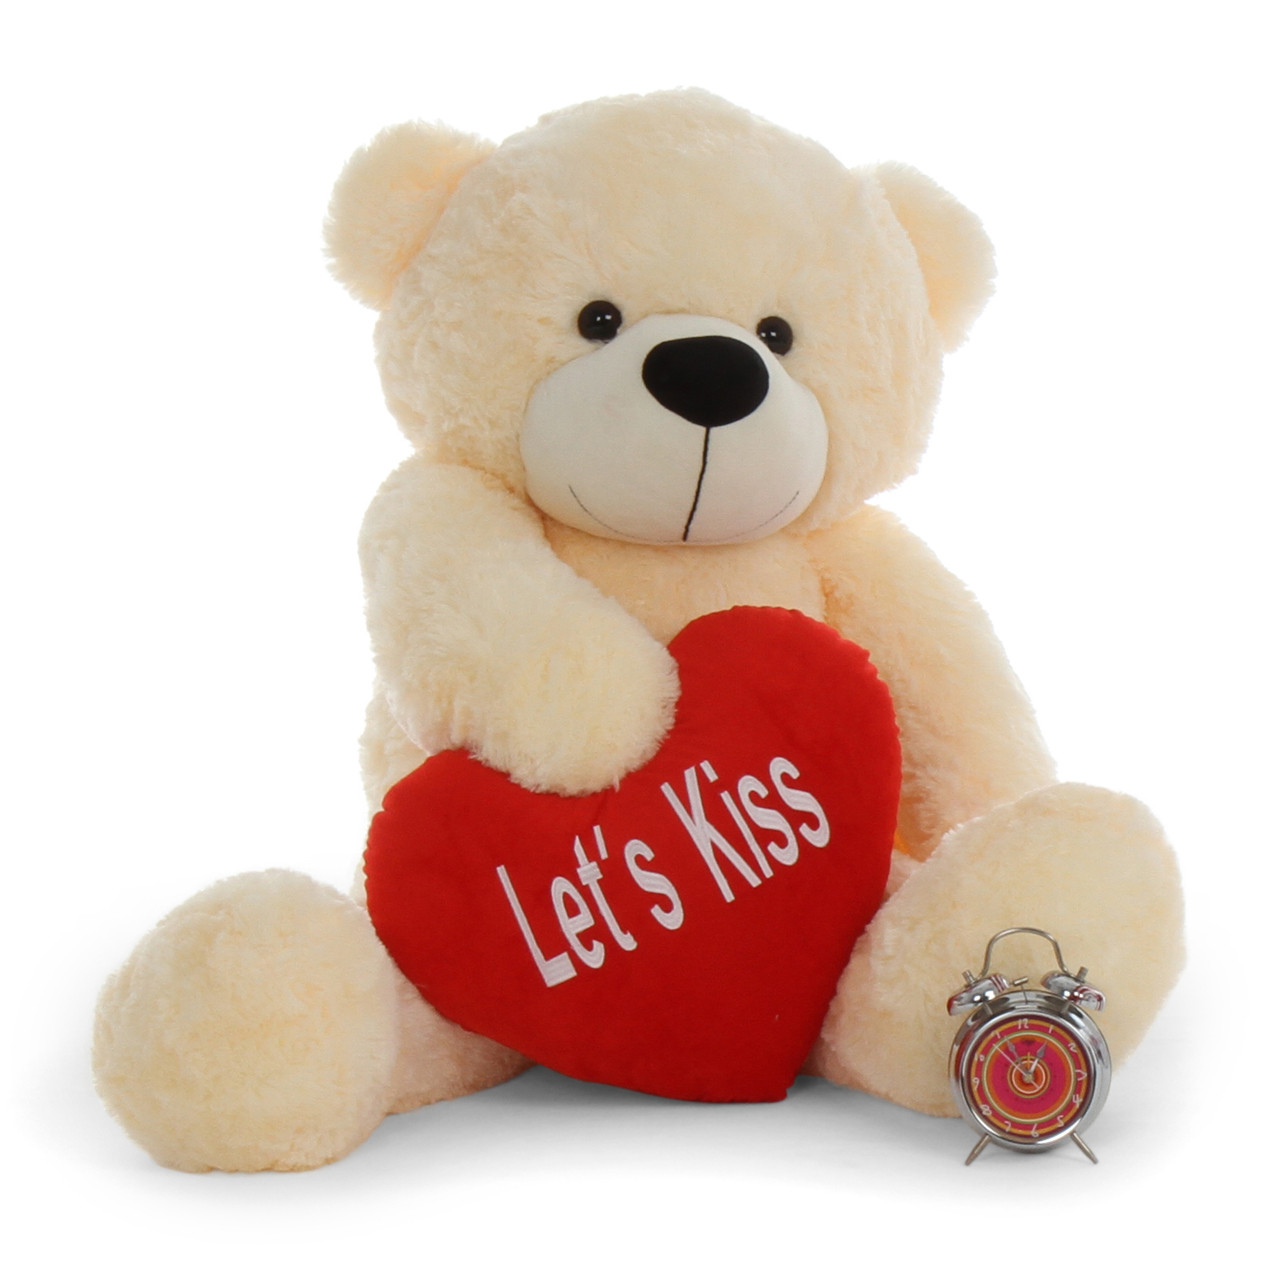 4ft best gift teddy bear for valentine s day with let kiss plush cuddles